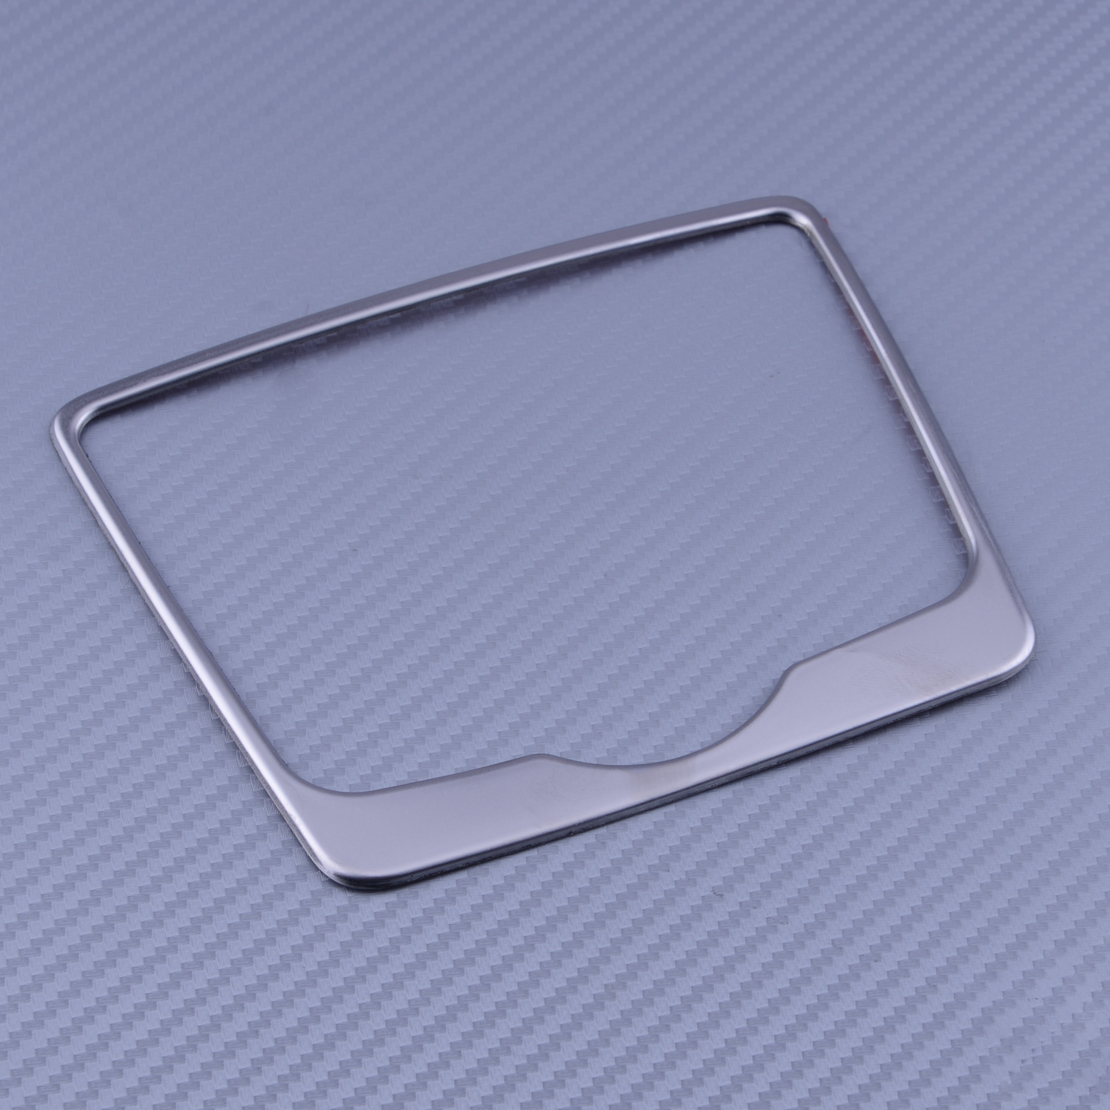 beler Stainless Steel Gear Shift Position Panel Decorative Cover Trim fit for <font><b>Audi</b></font> <font><b>A4</b></font> A4L <font><b>2017</b></font> image